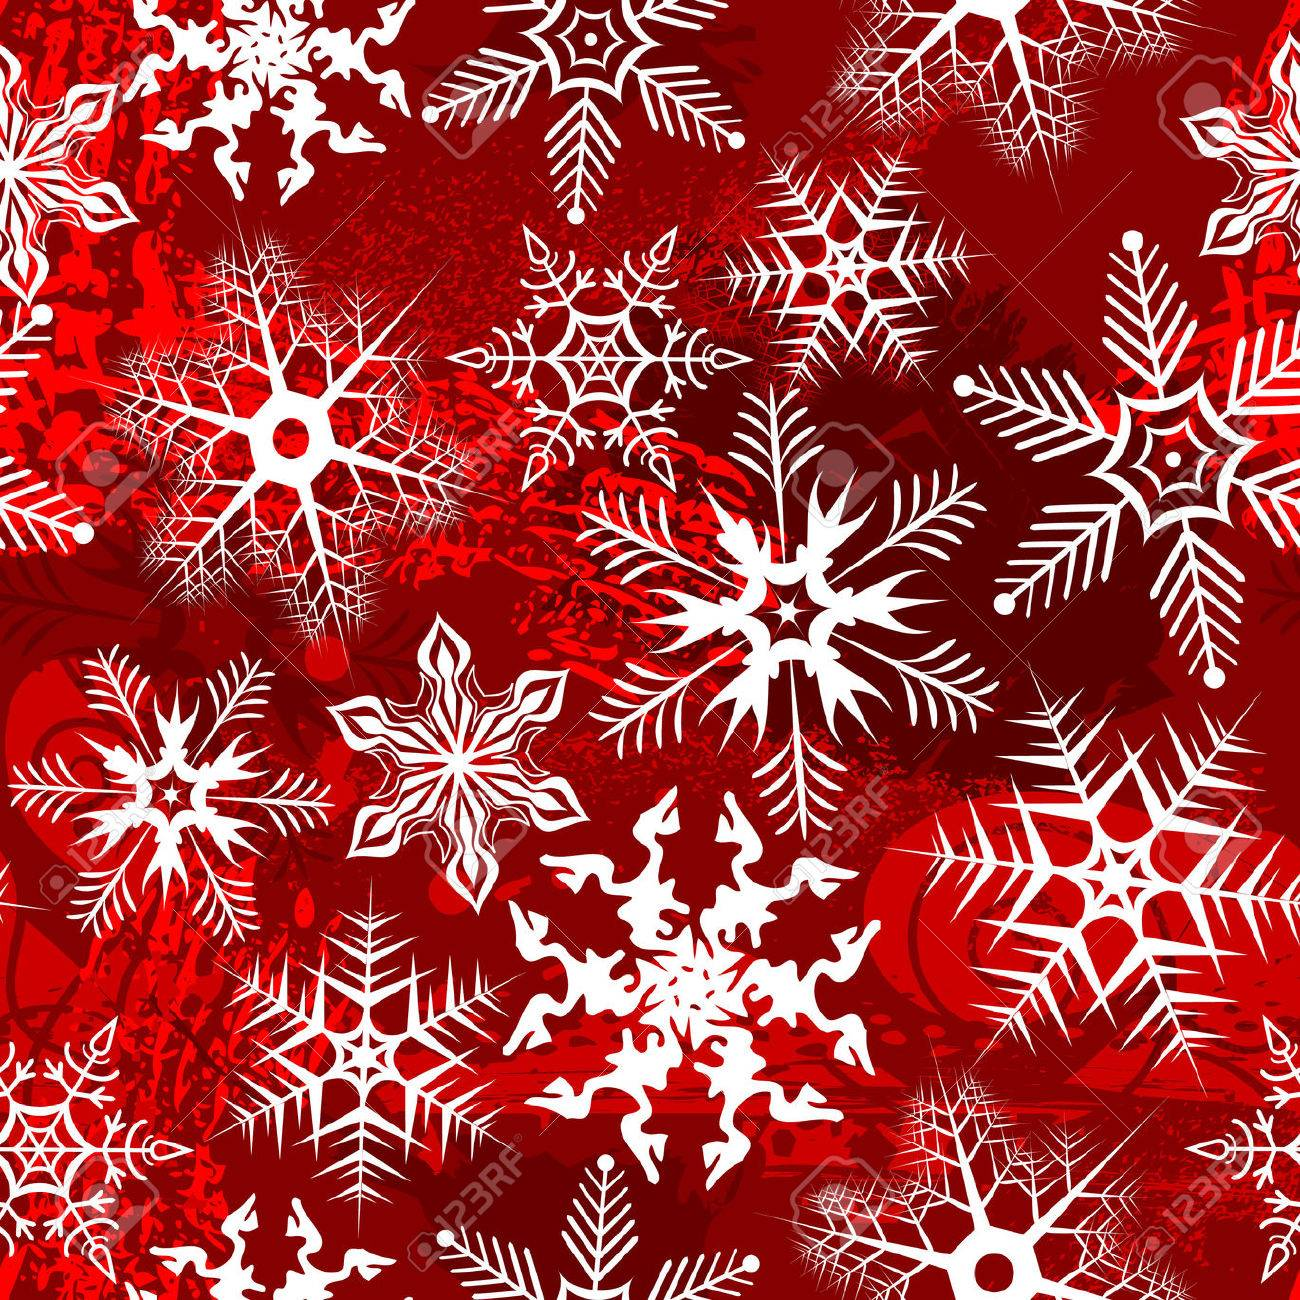 Red background with snowflakes. Vector illustration Stock Vector - 5558108